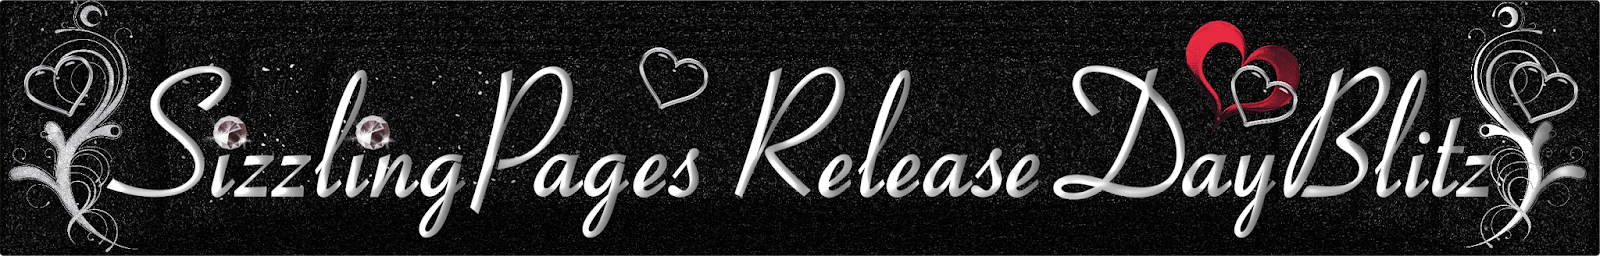 sp release day blitz bl.png